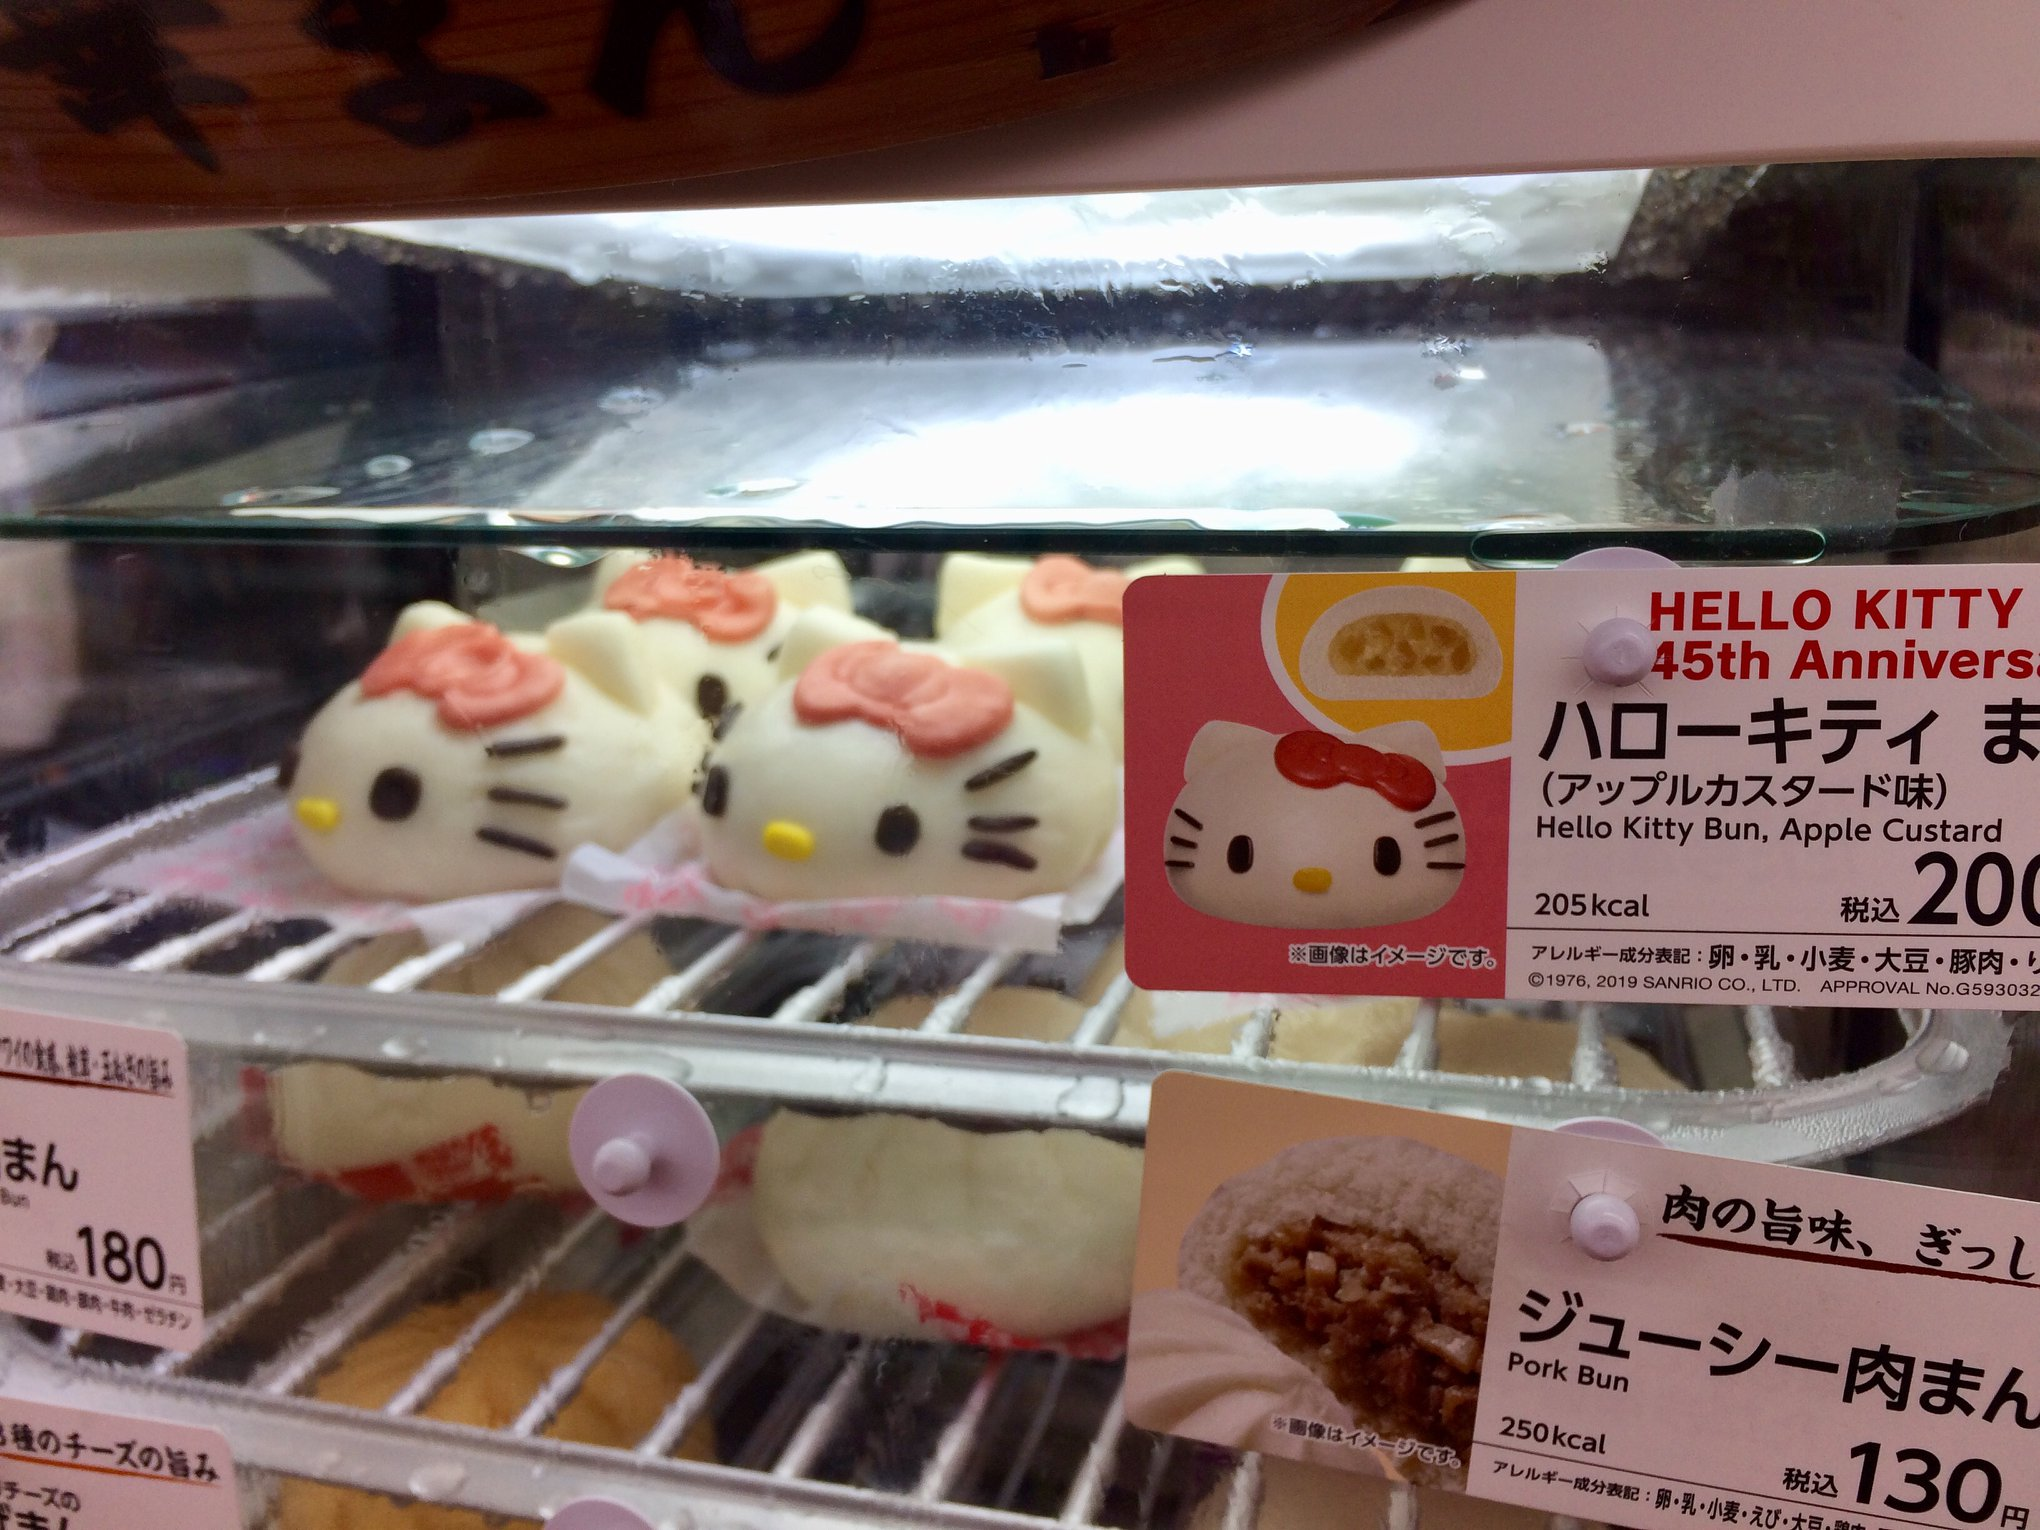 We became connoisseurs of kombini (convenience stores) where we regularly stopped for supplies when out shooting. Here are some great little Hello Kitty buns at our favourite Lawson's.